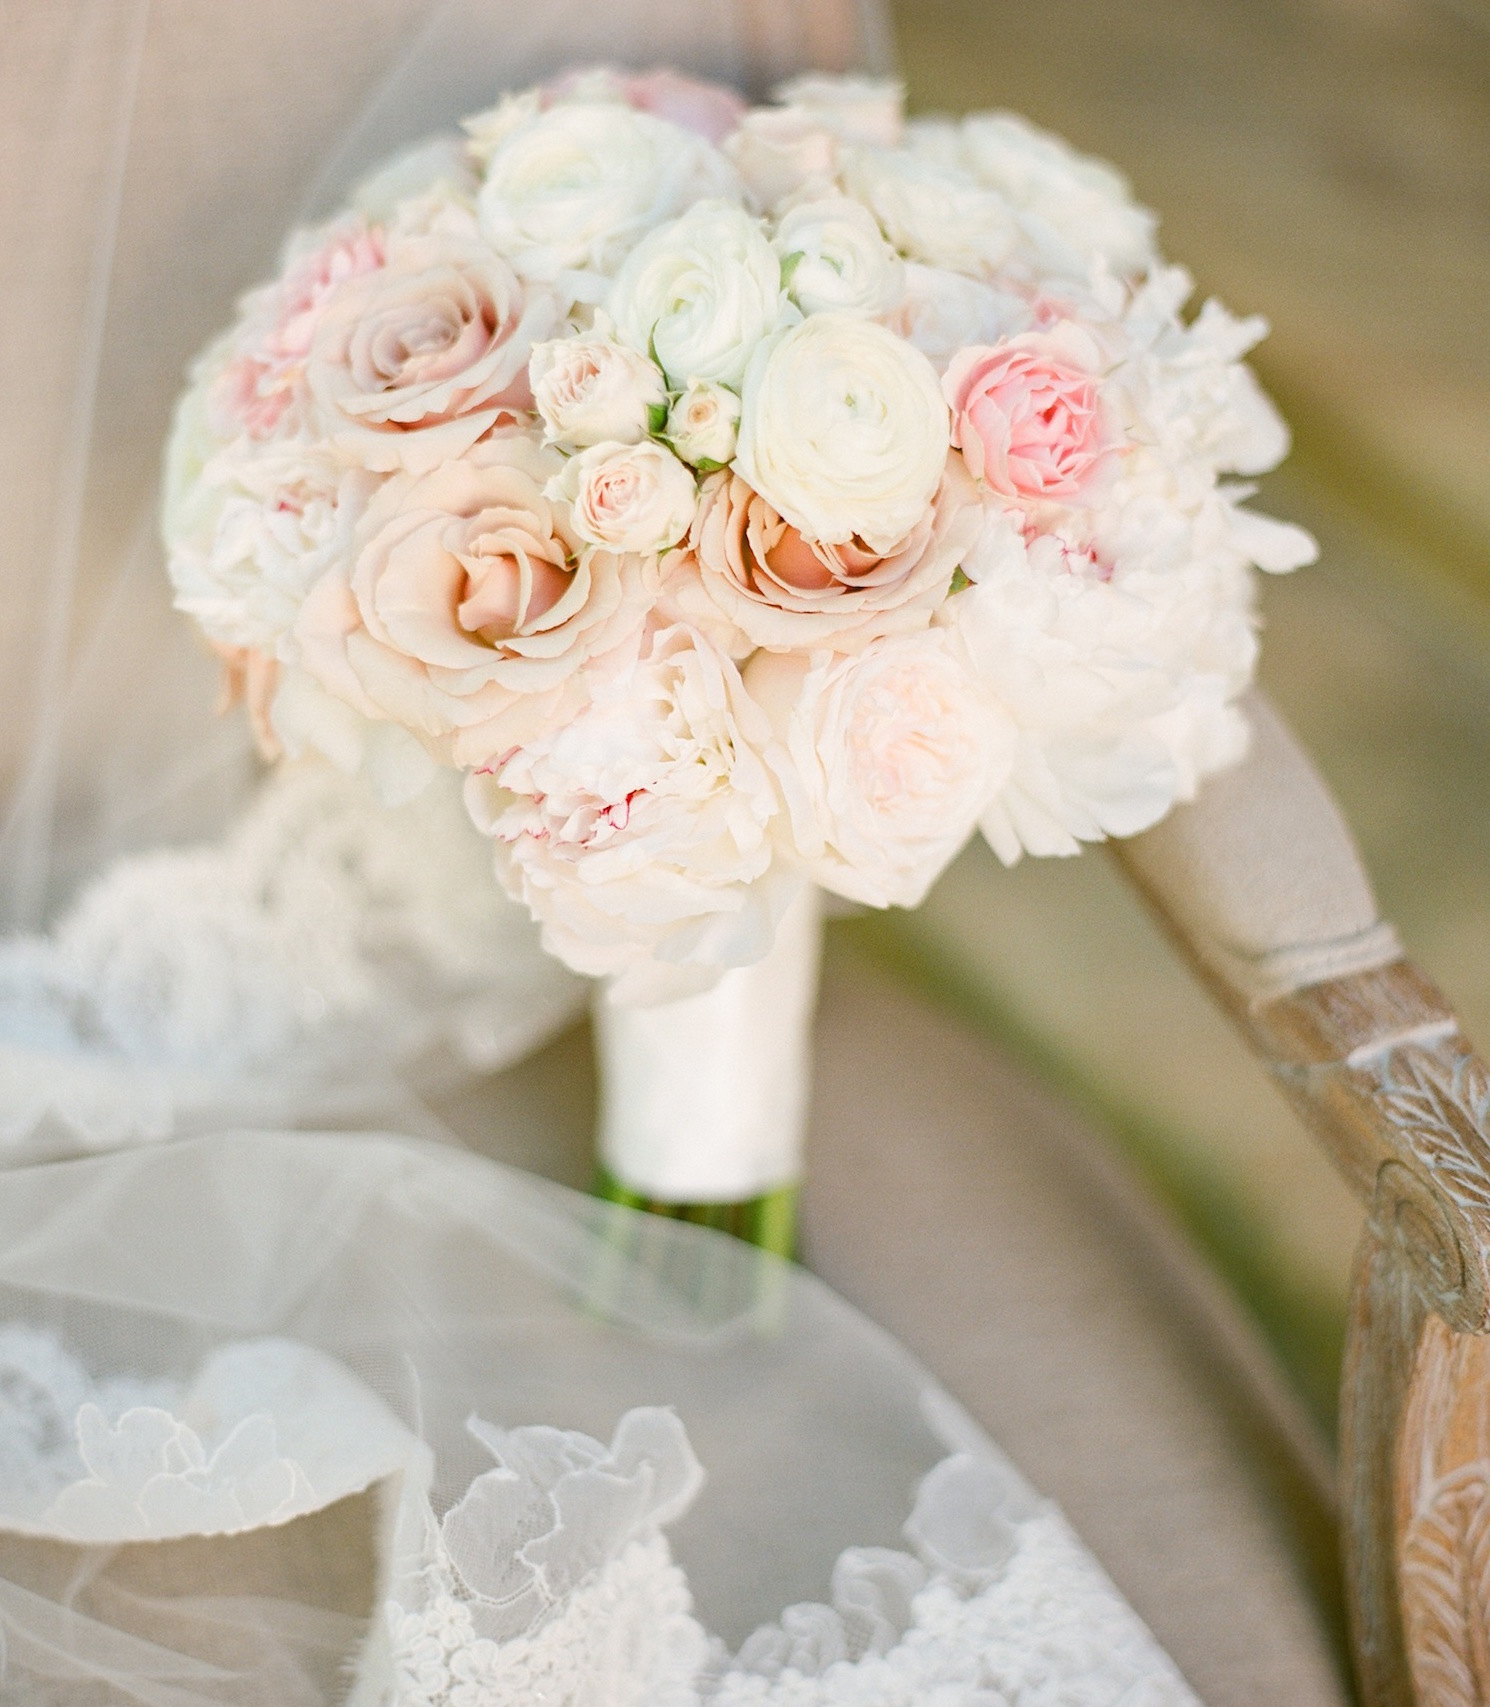 Pink Wedding Flowers: Wedding Flowers: Stylish Pink Bridal Bouquets